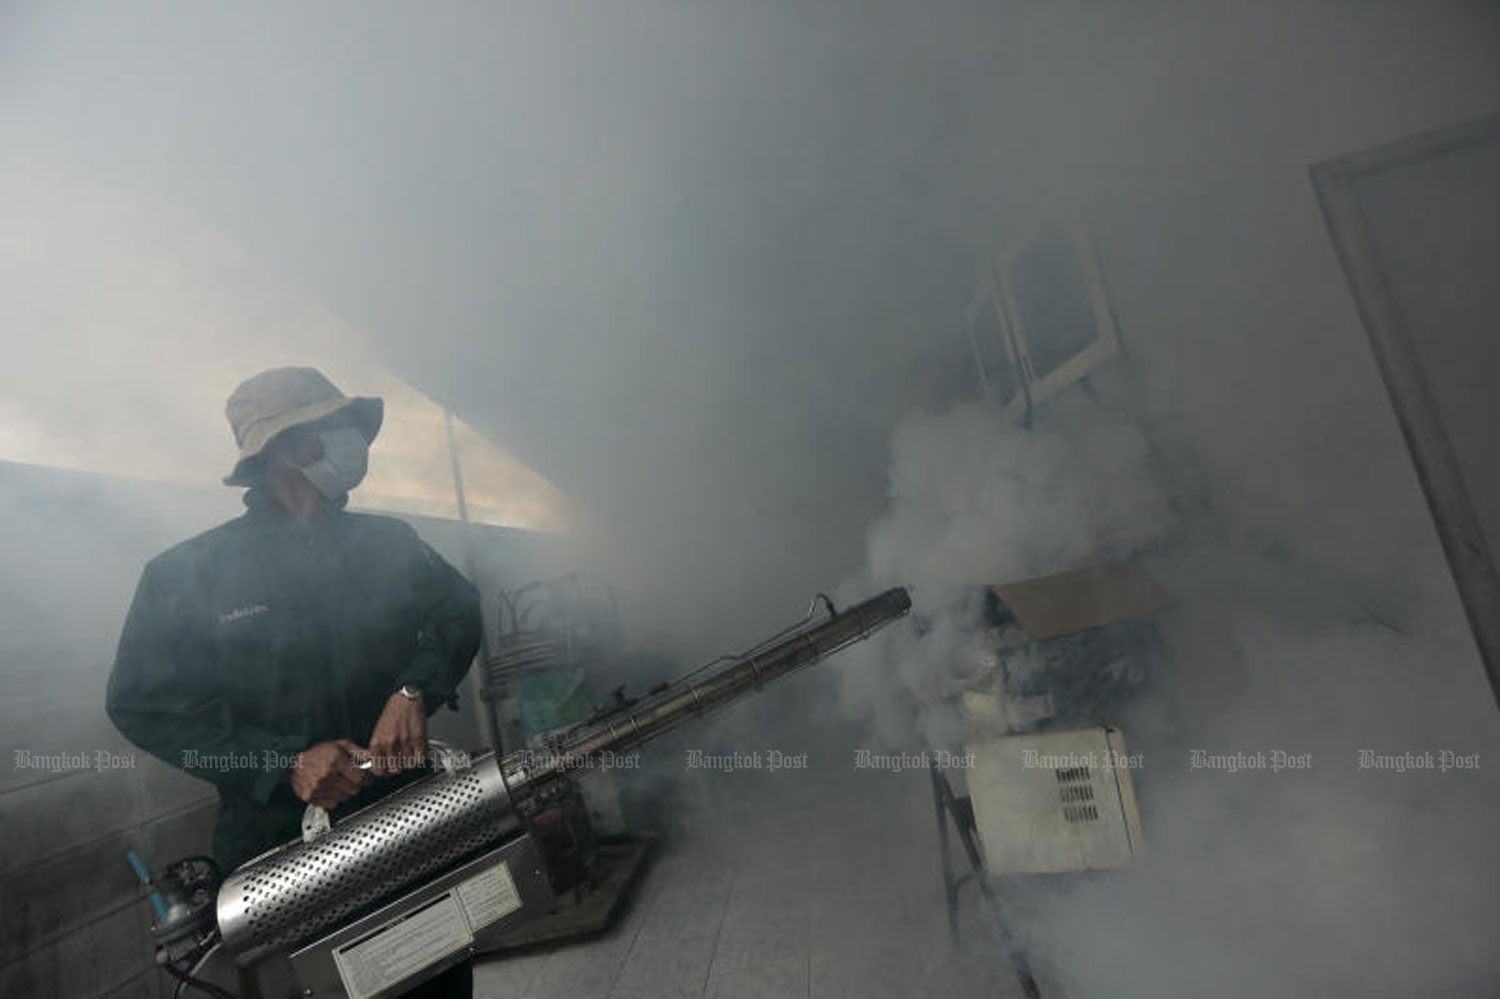 A Wang Thonglang district official sprays fogging chemicals in a residential area  in Soi Lat Phrao 69 on Lat Phrao Road in Bangkok to prevent the spread of mosquitoes that cause dengue fever. (File photo by Patipat Janthong)